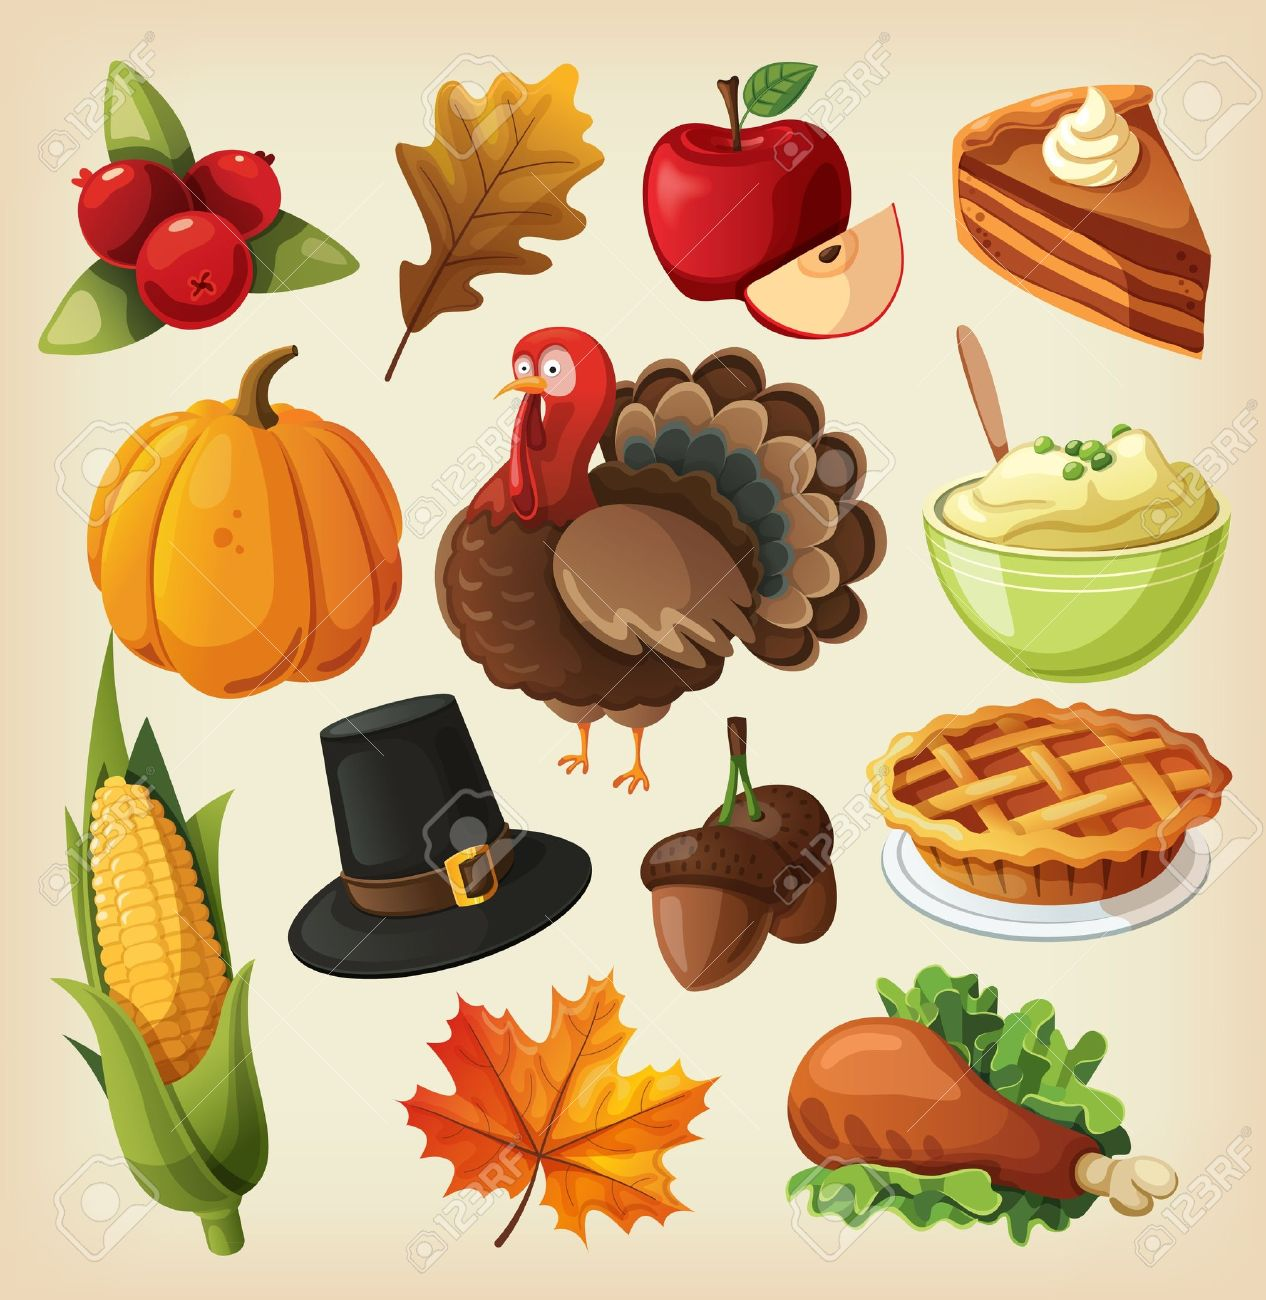 set of colorful cartoon icons for thanksgiving day royalty free